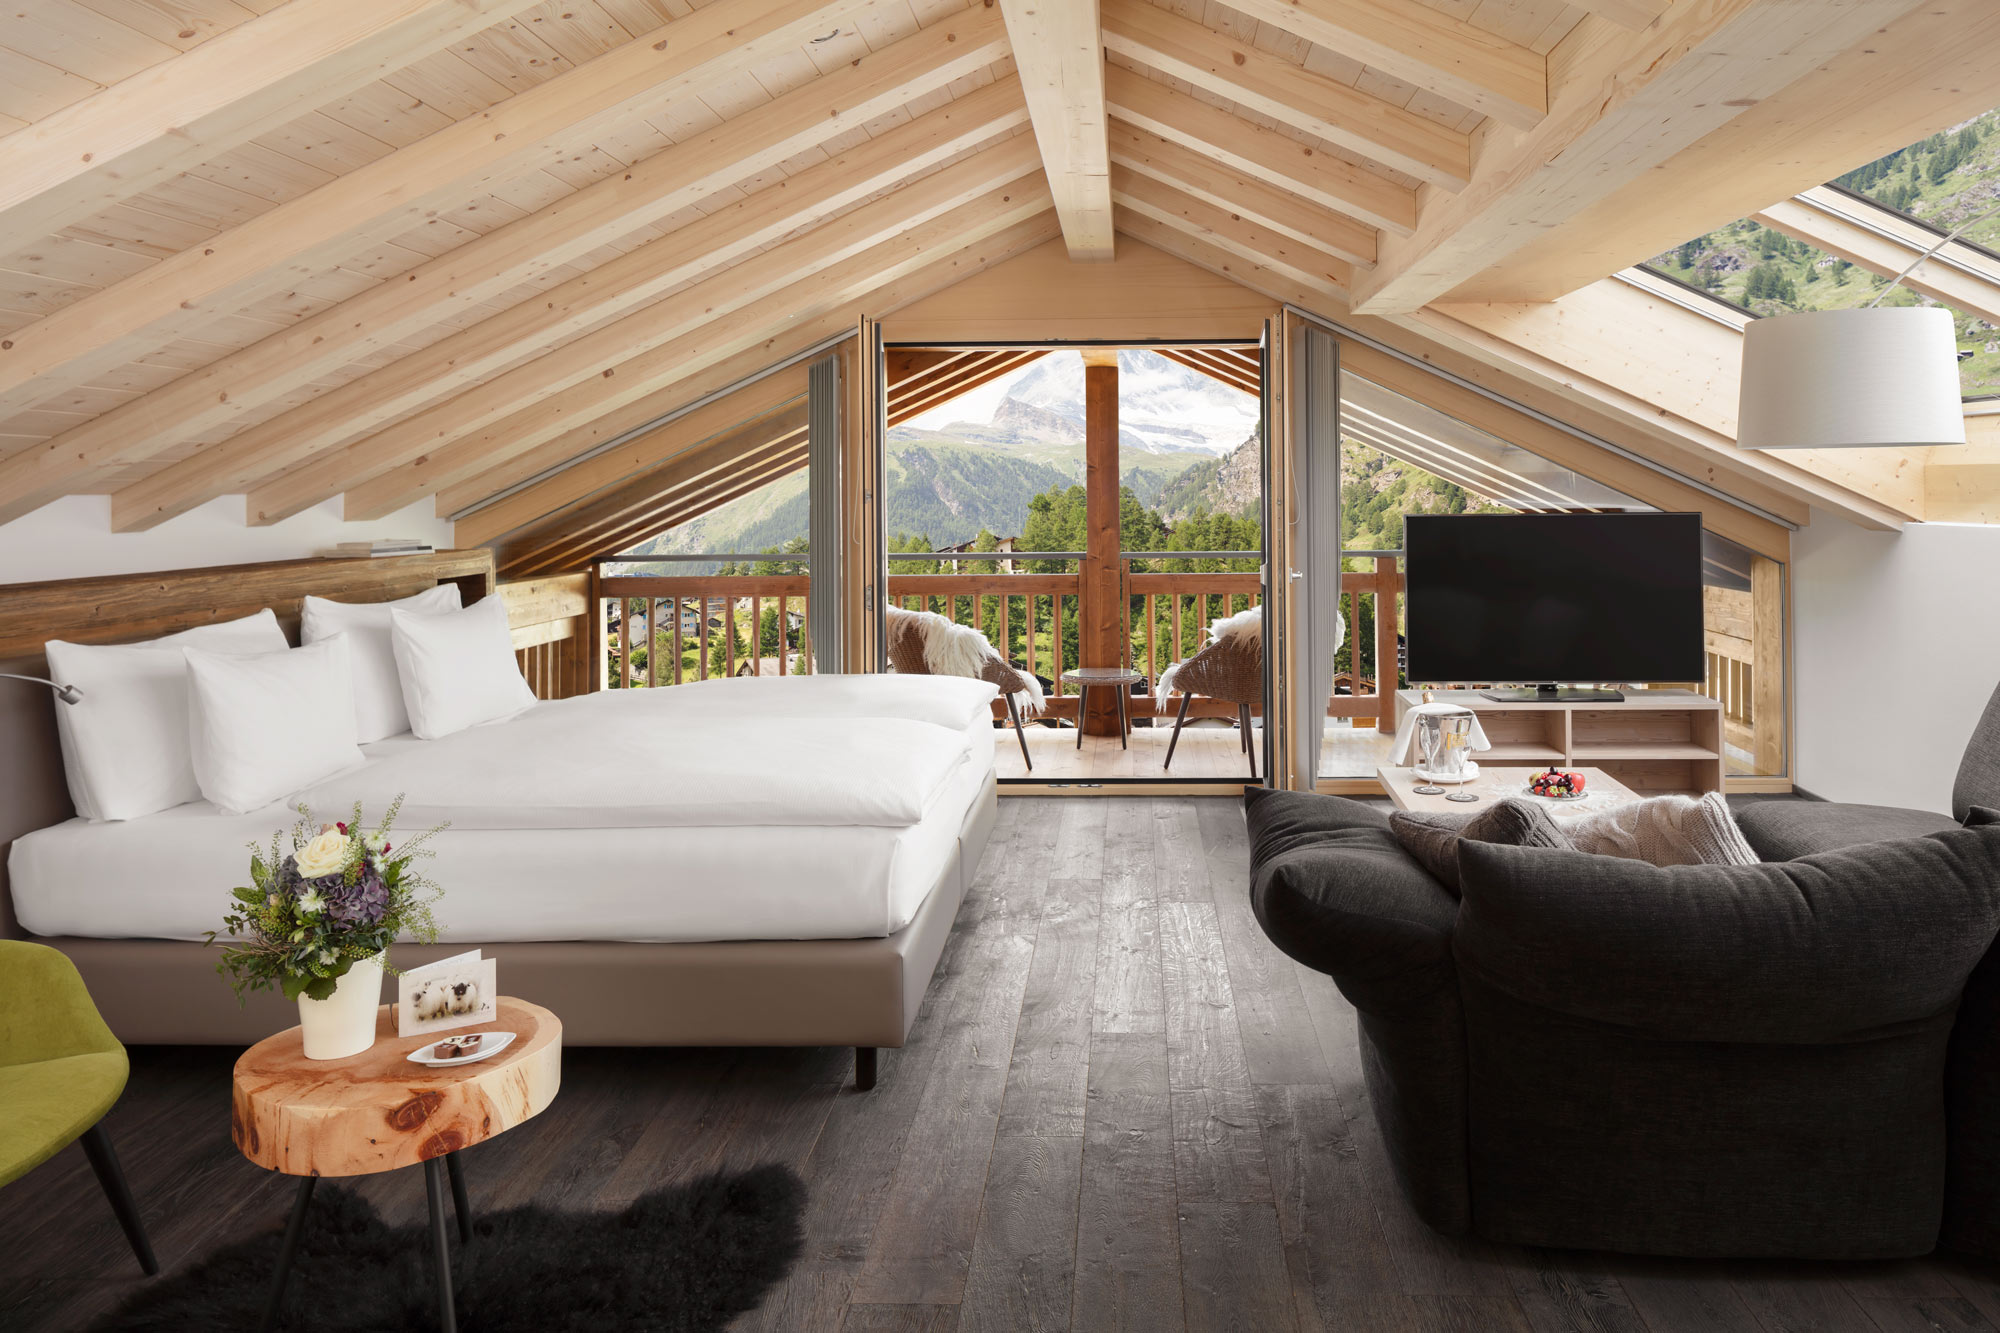 Luxury-Chalet-Switzerland Hotel architecture photography by Adrian Kilchherr